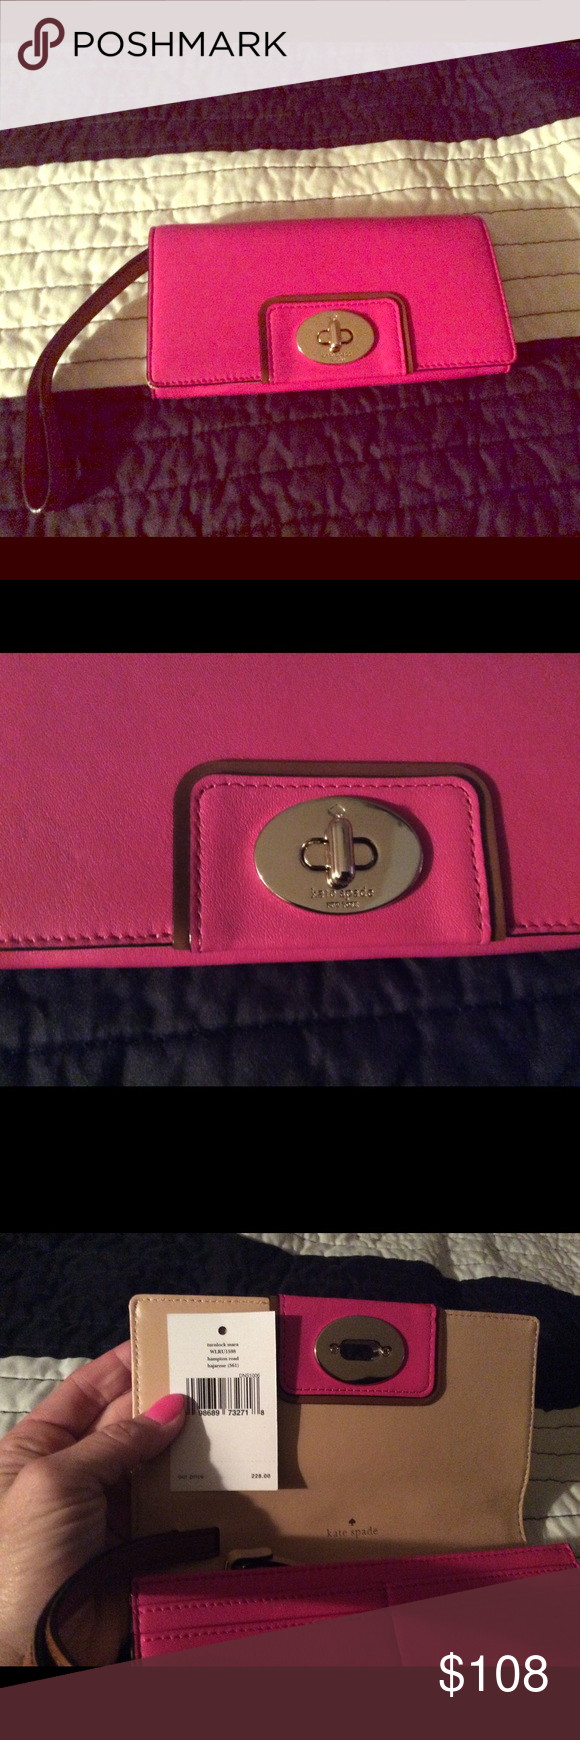 NWOTS Kate Spade pink wallet/wristlet beige strap Smoke pet free home ships same day kate spade Accessories